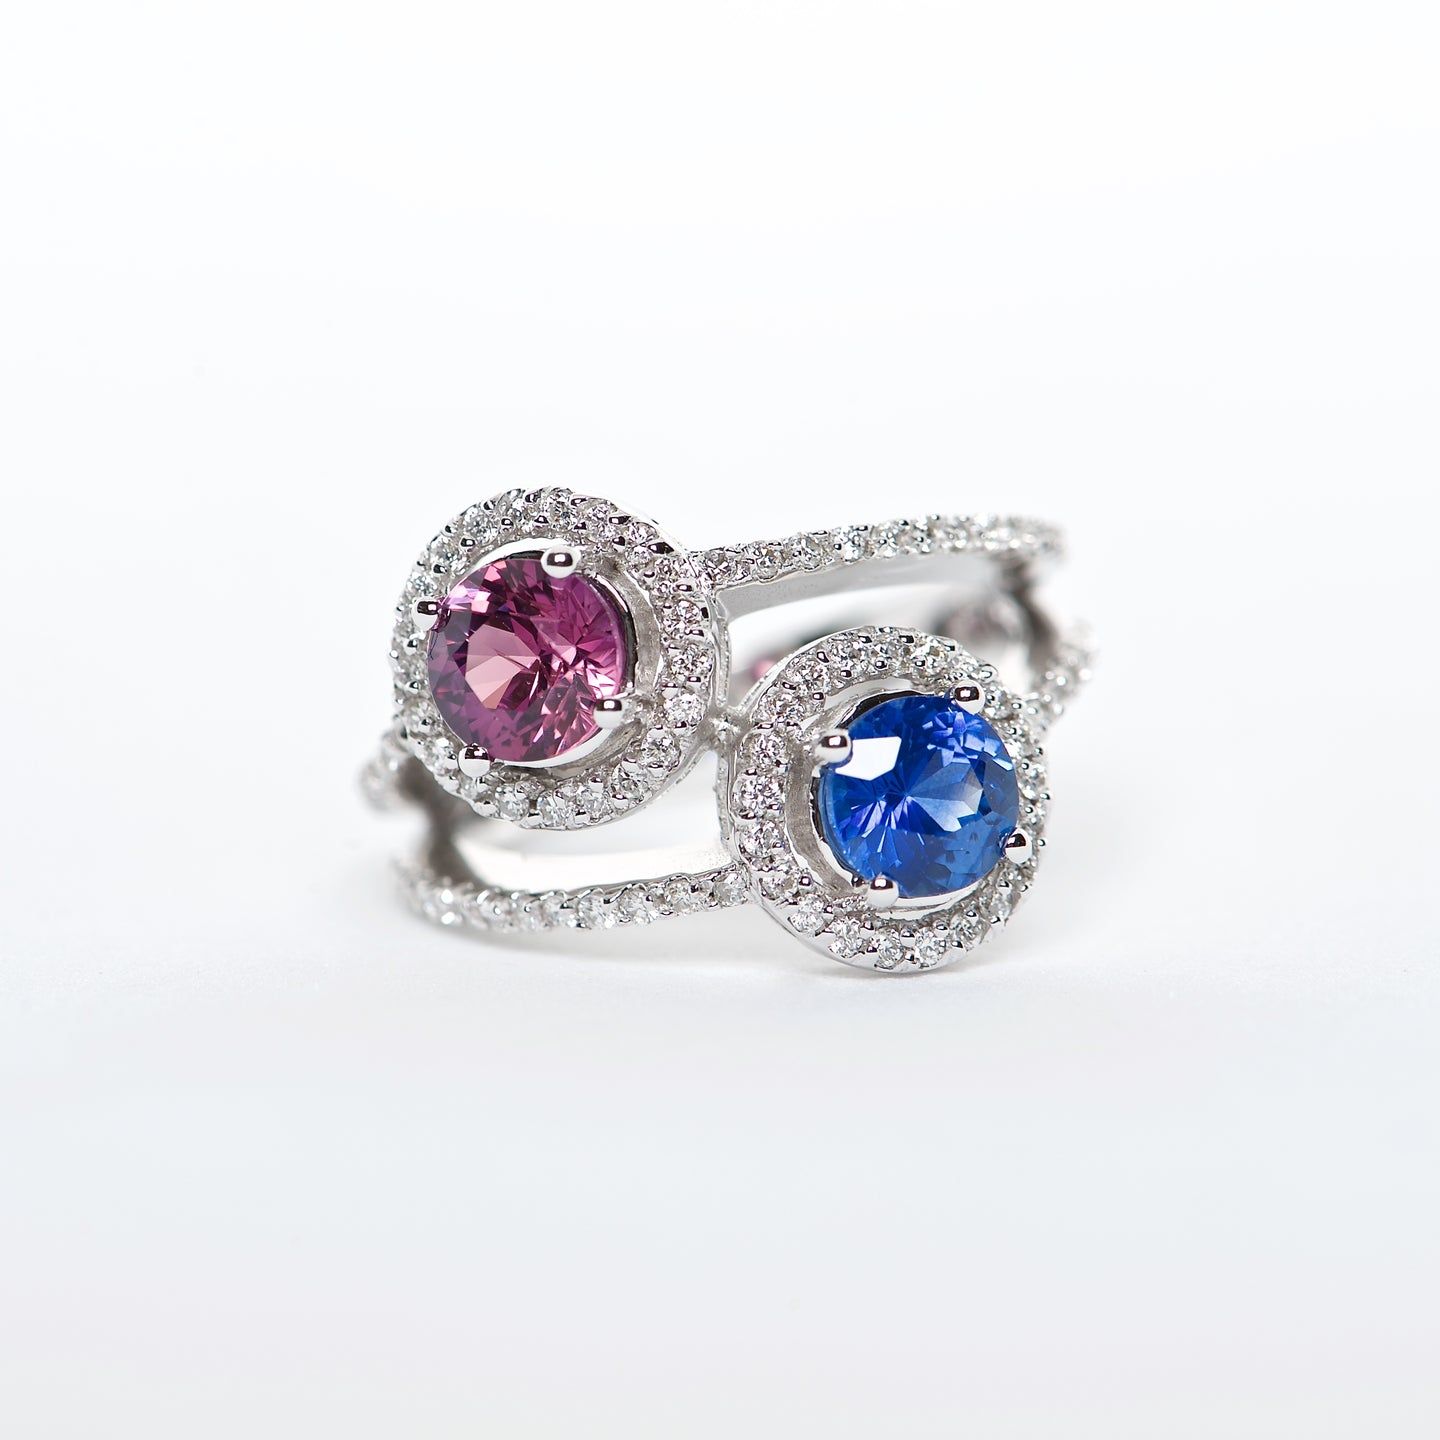 The Harley - 18K Pink, Blue Sapphire and Diamond ring